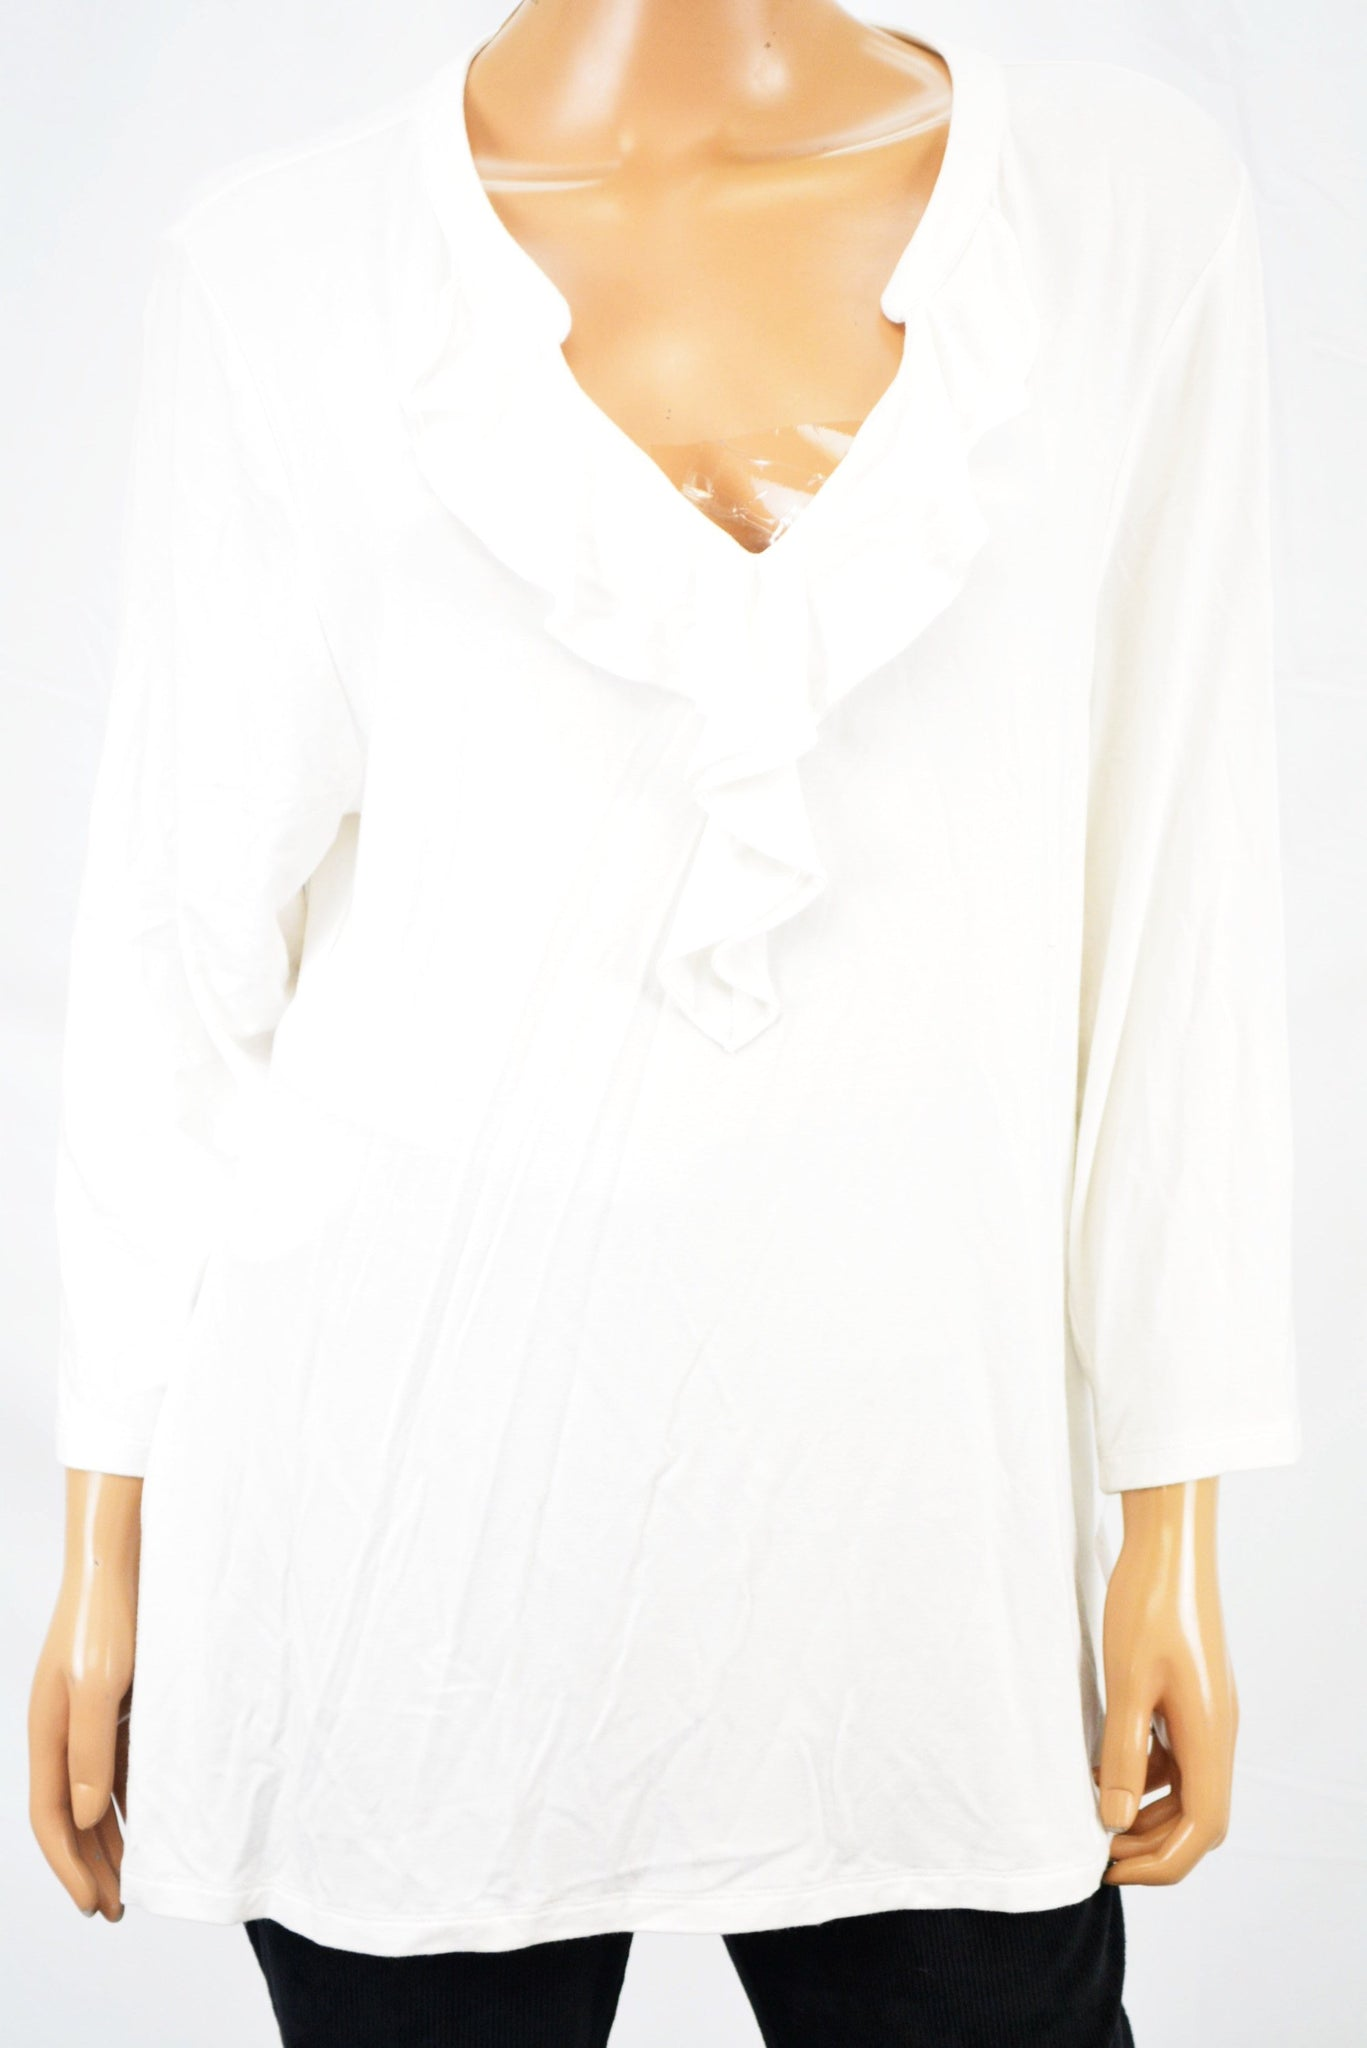 Charter Club Women's 3/4 Sleeve Stretch White Ruffled Blouse Top XXL